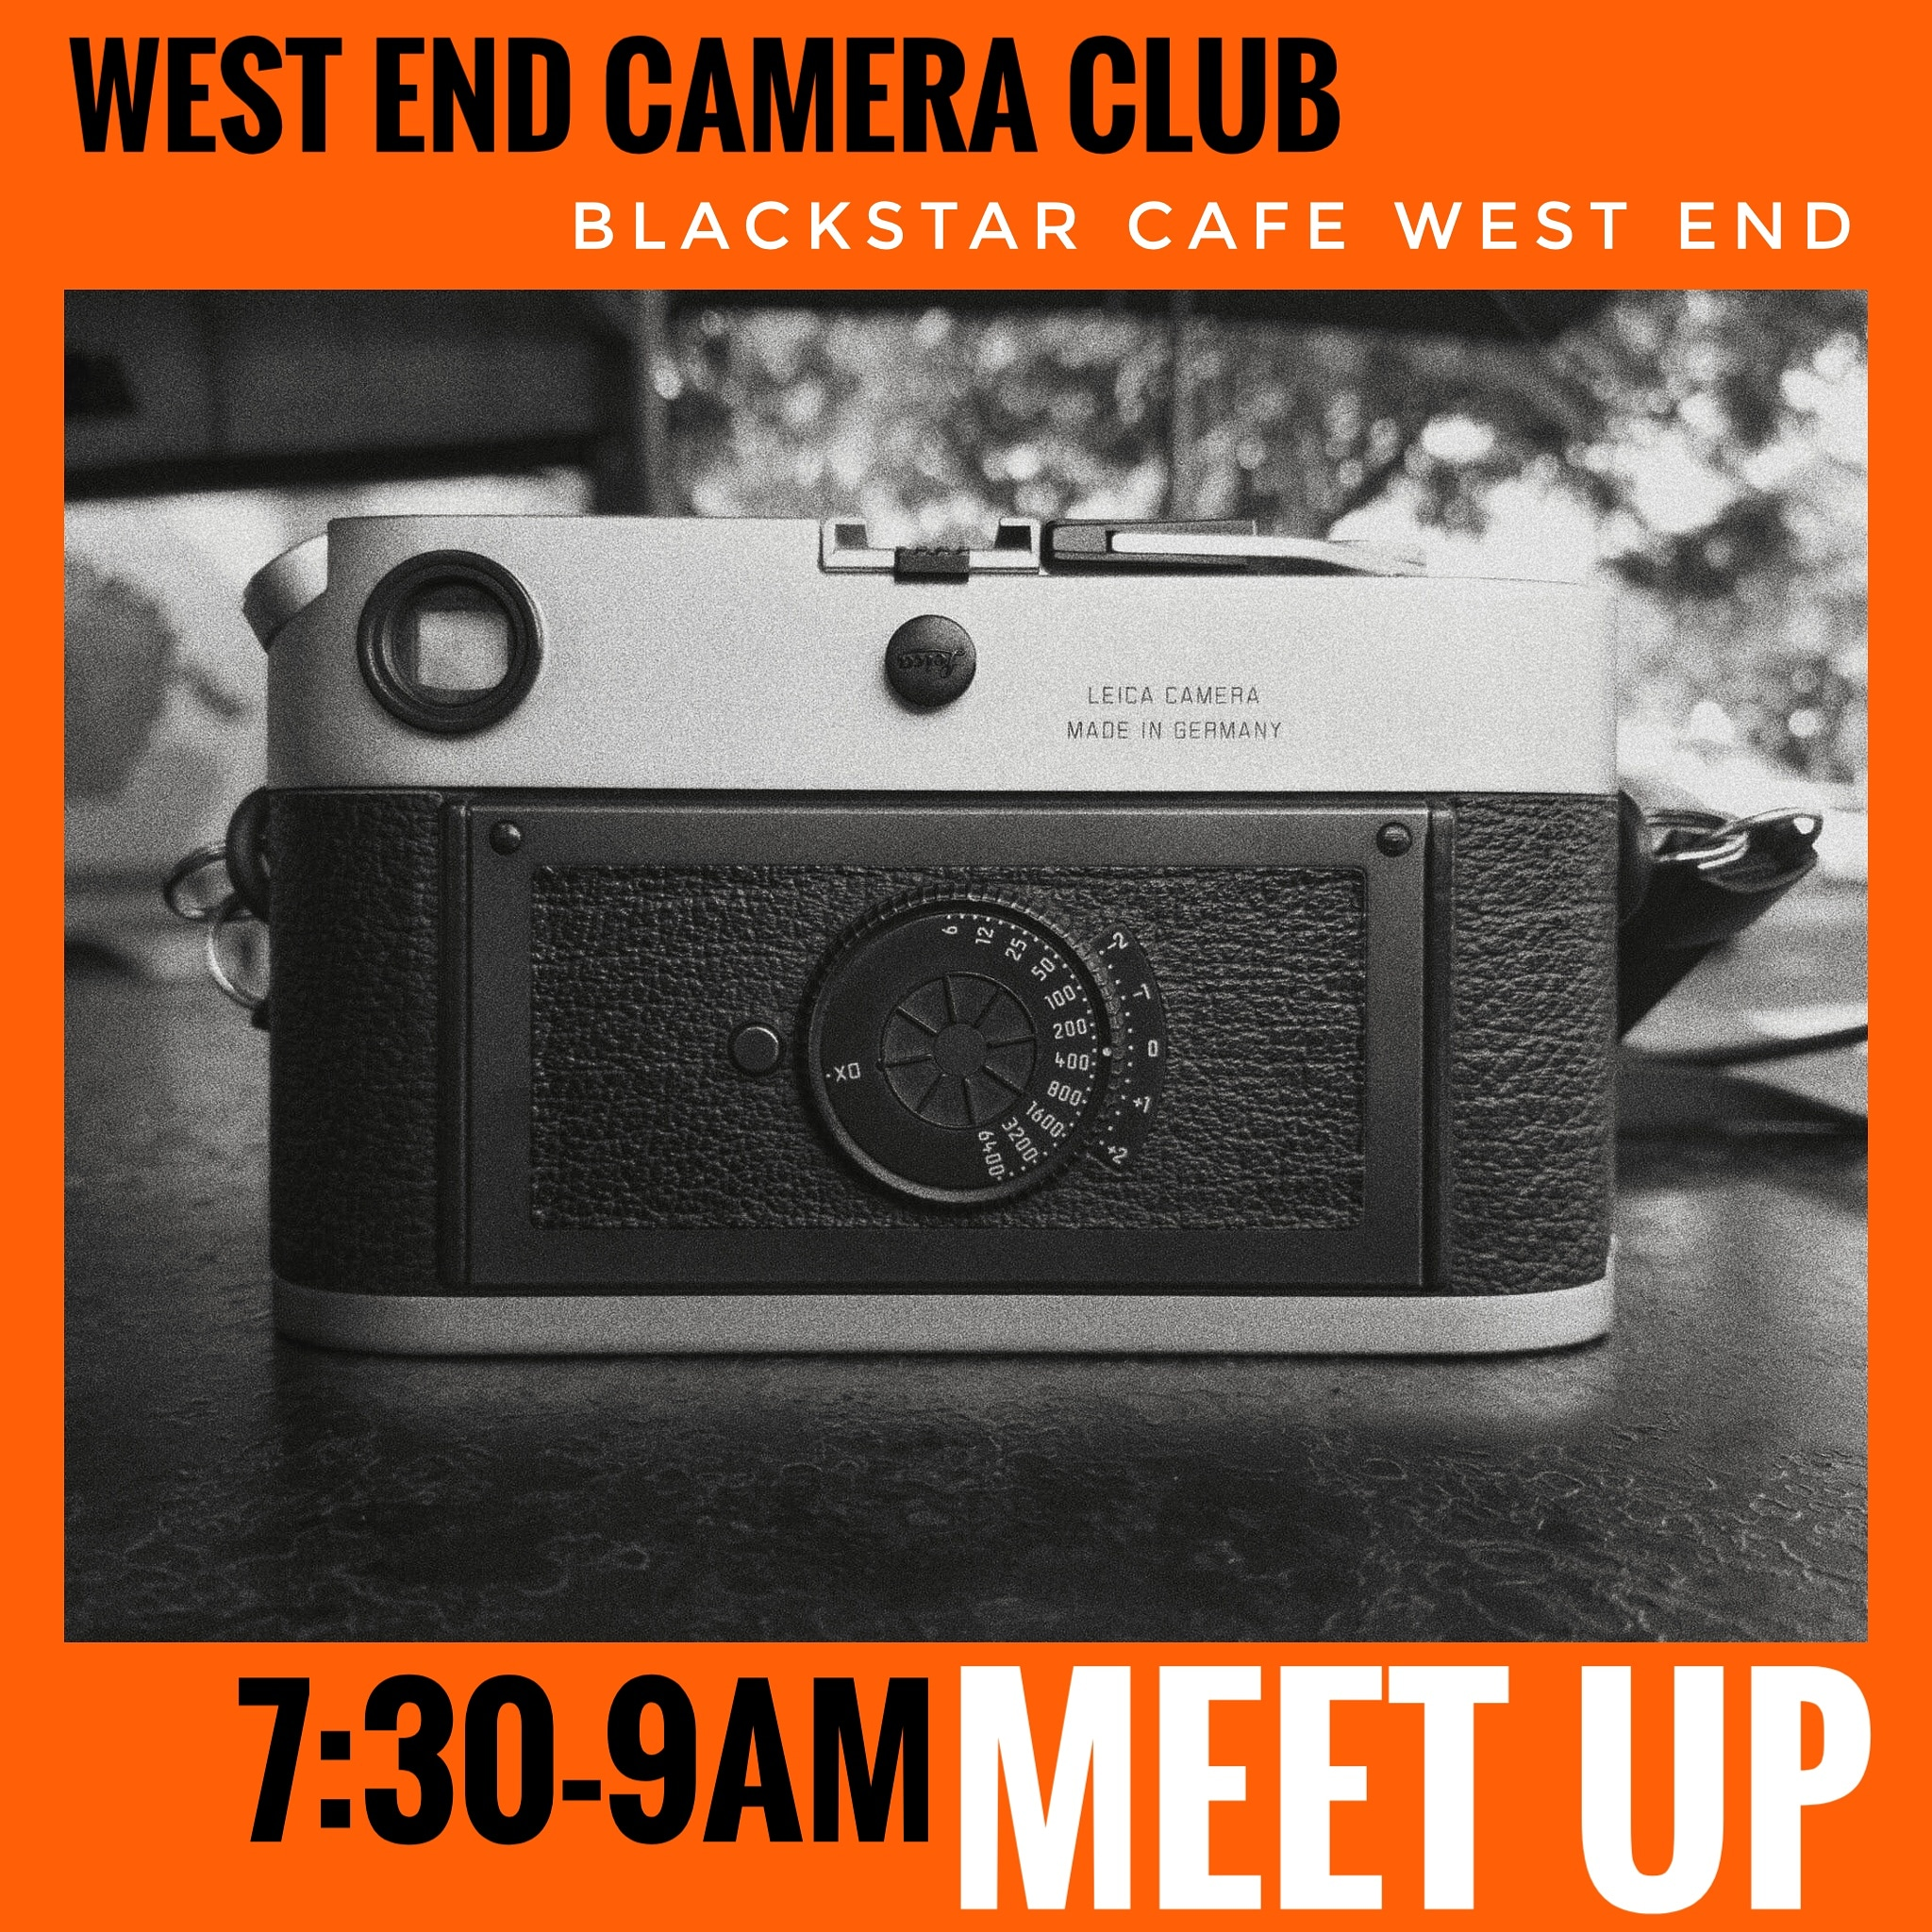 WECC MEET-UP - Sunday 20thBLACK STAR CAFE44 Thomas Street, West EndBrisbaneFOR THOSE INTERESTED7:30AM - MEETING AT 'BLACKSTAR CAFE' WEST END. GRAB A COFFEE AND EVEN SOME BREAKFAST IF YOUR UP TO IT.